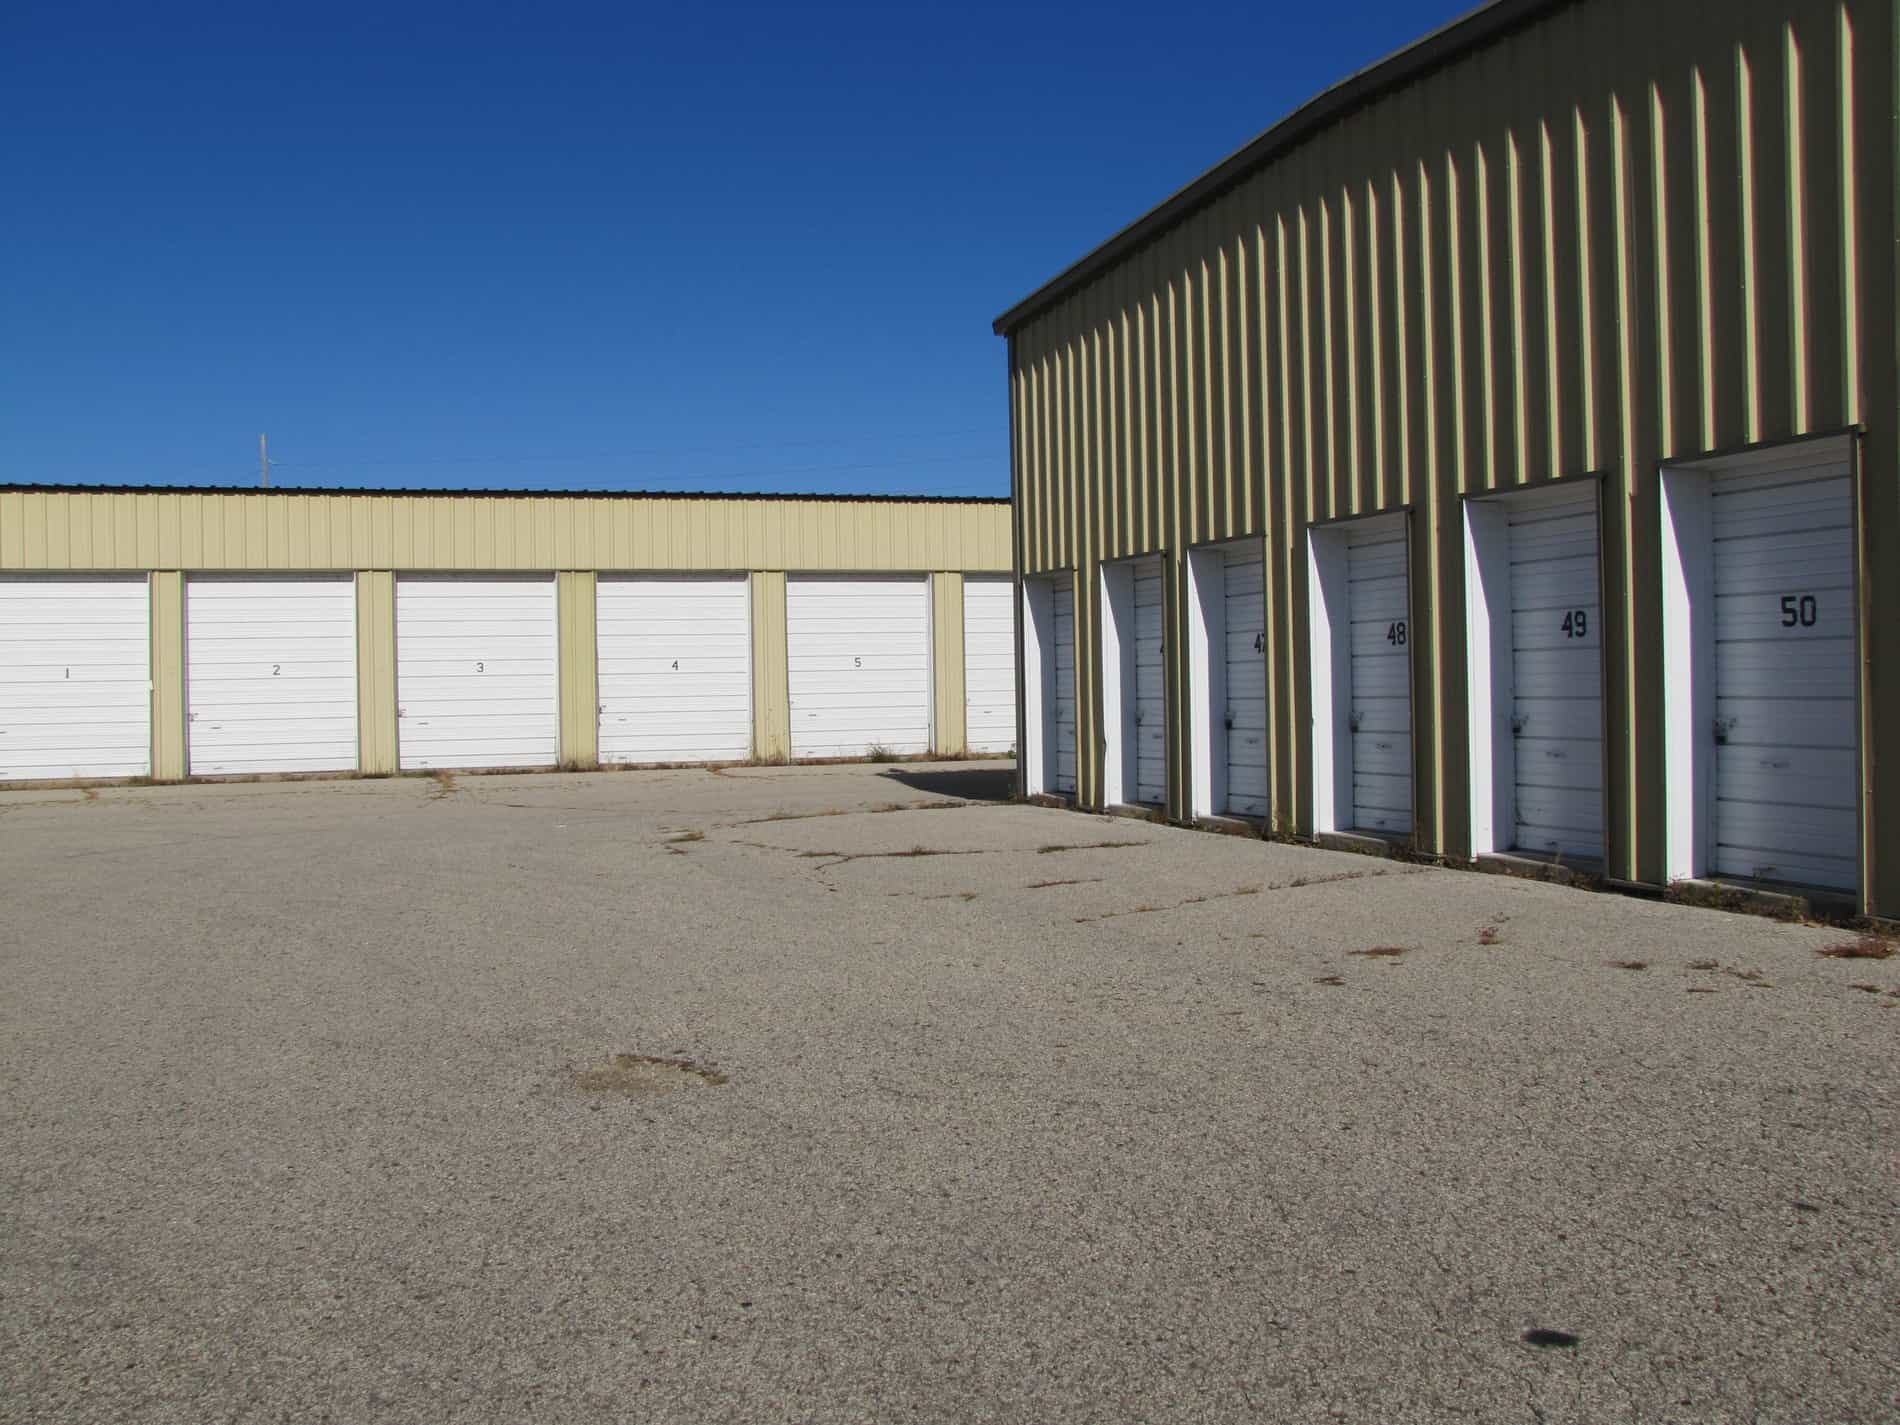 Oversized Units With Extra Large Doors Are Available At This Site, Which  Are Ideal For RV/Boat Storage.